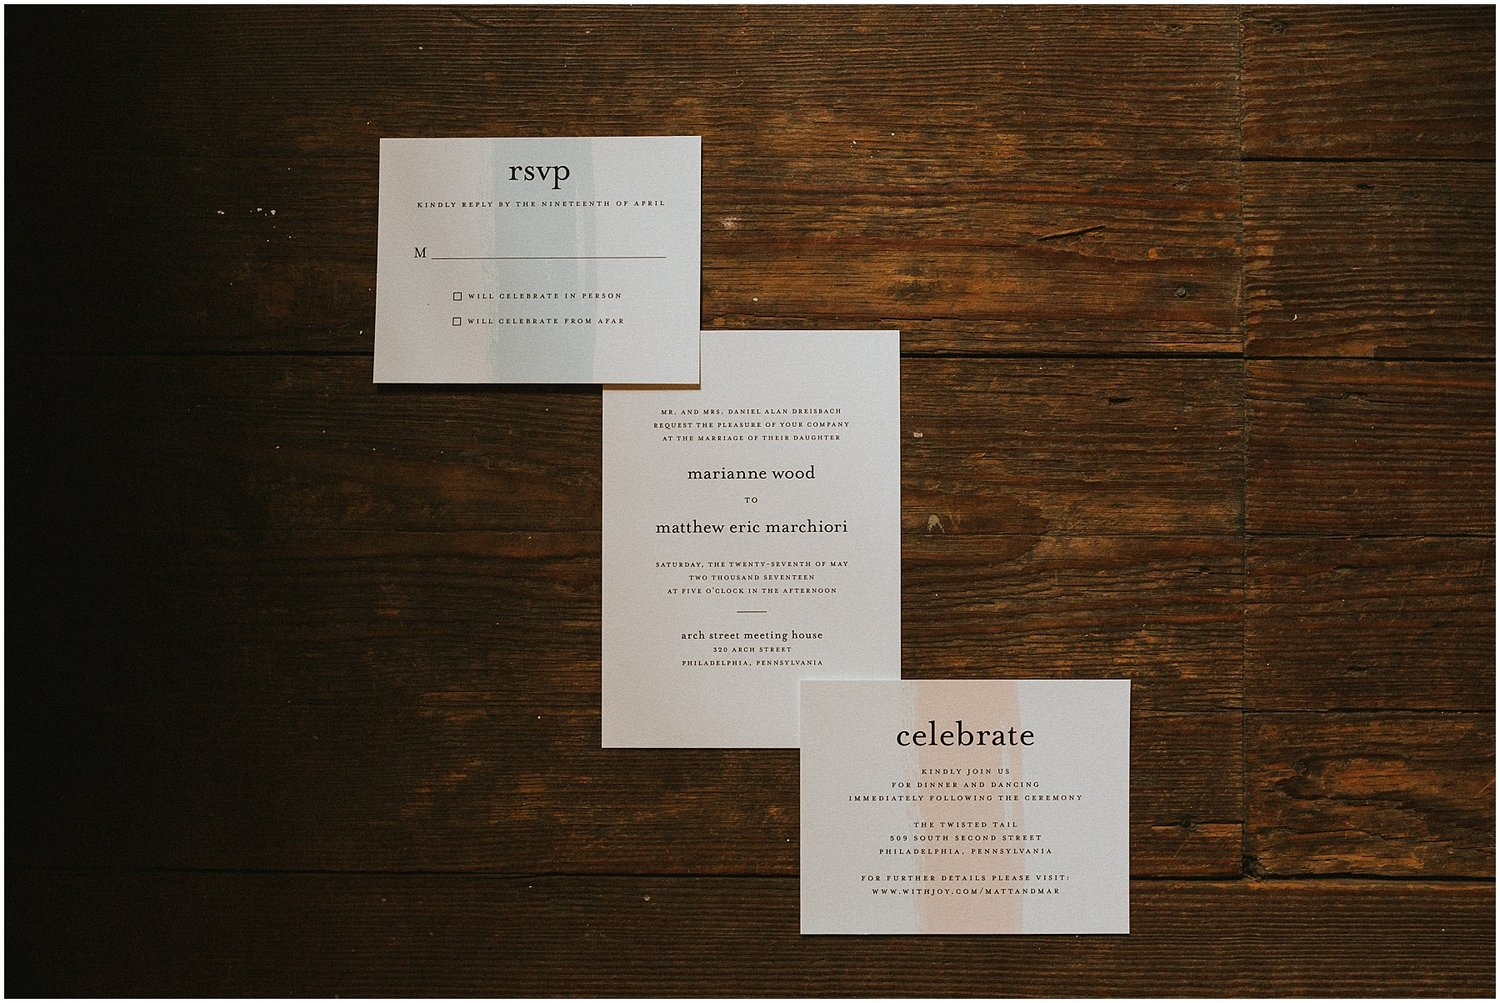 Matt marianne arch street meeting house twisted tail pastel colored wedding invitations at the arch street meeting house in philadelphia pennsylvania monicamarmolfo Choice Image